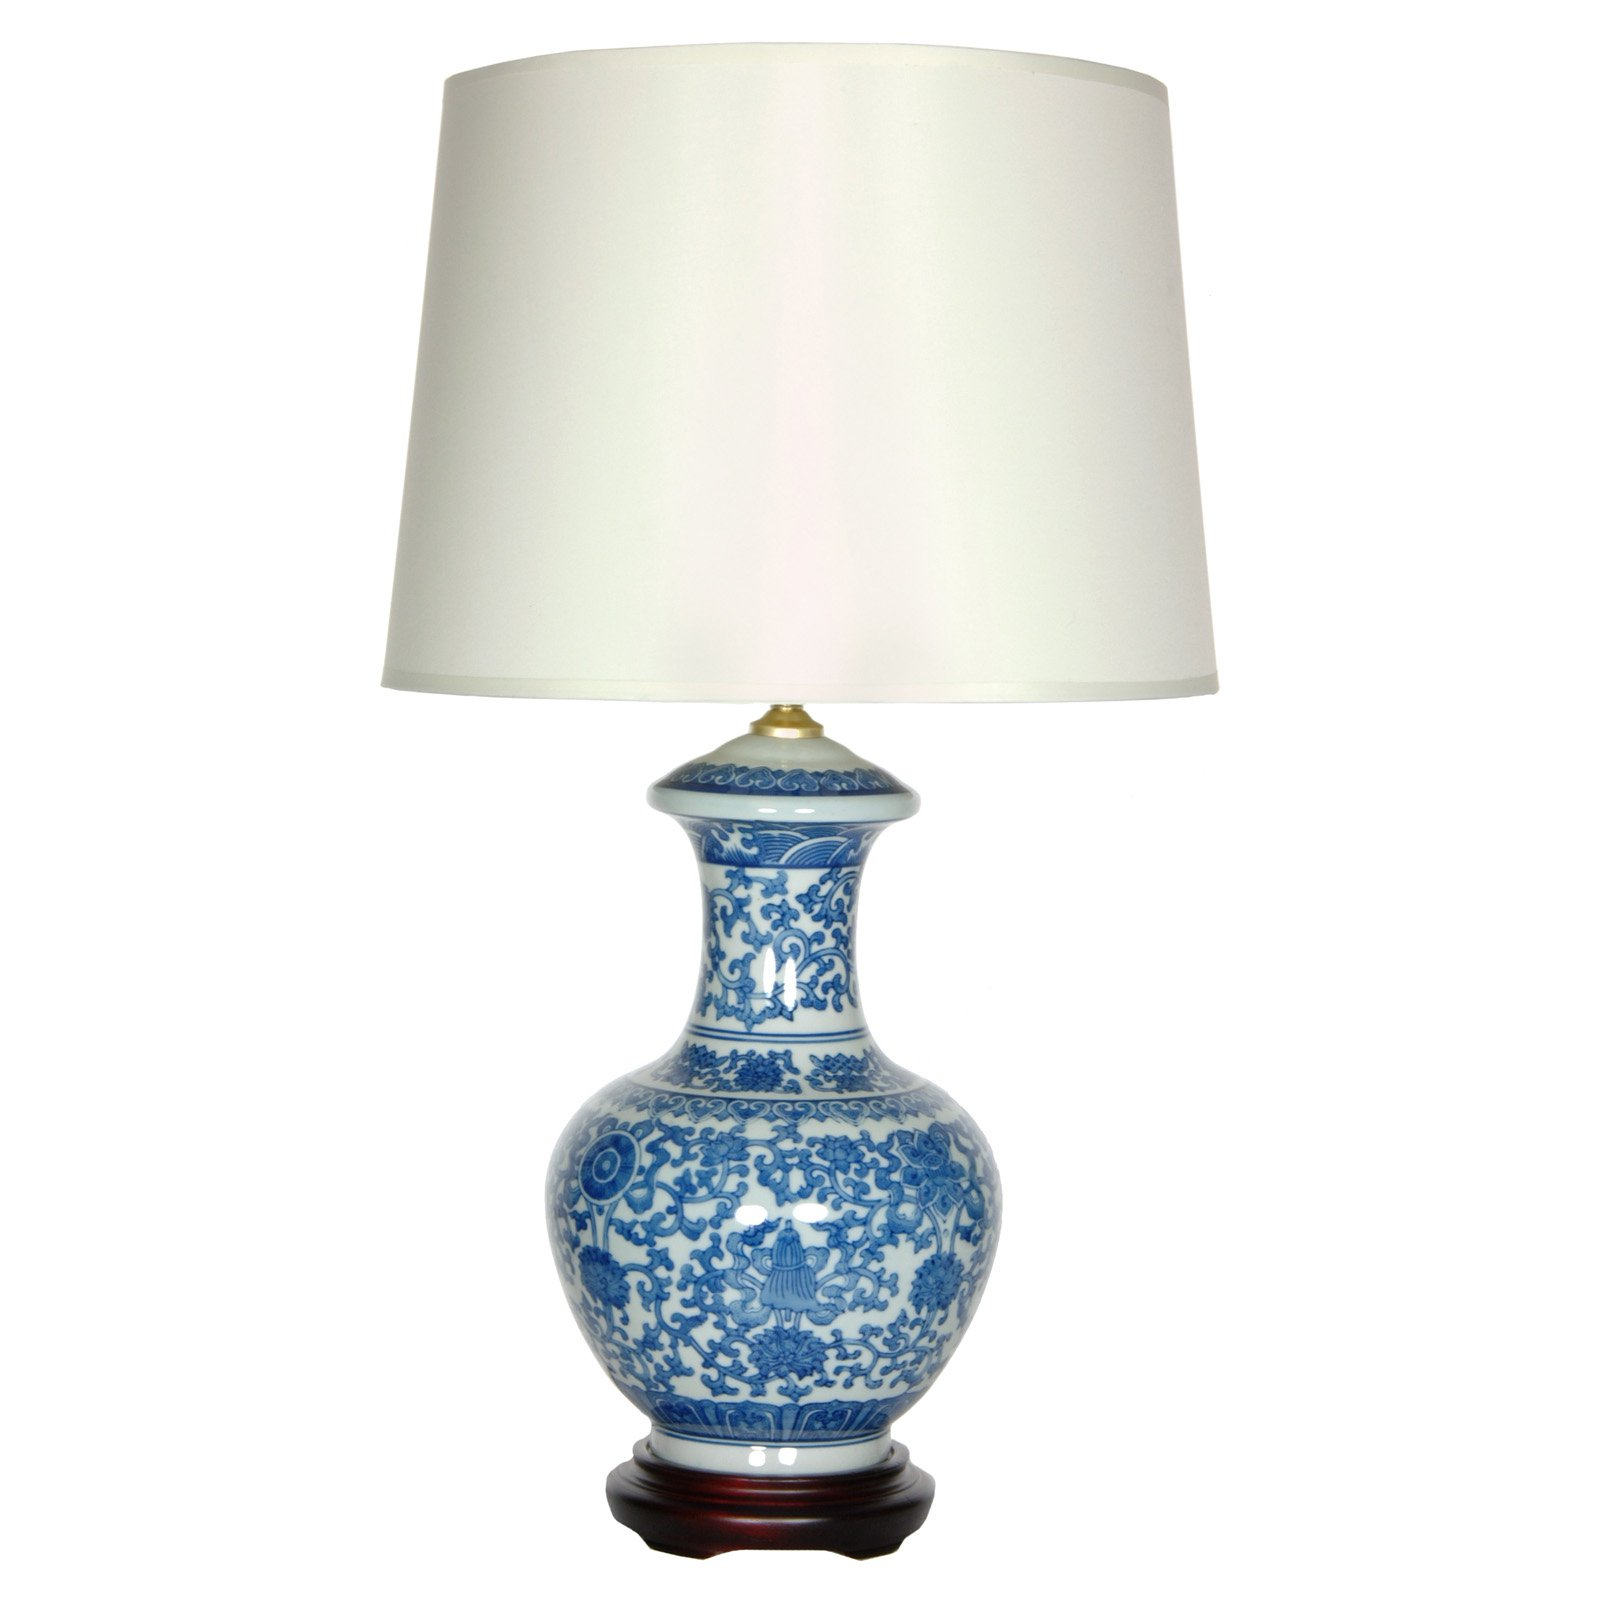 Blue and White Porcelain Vase Lamp